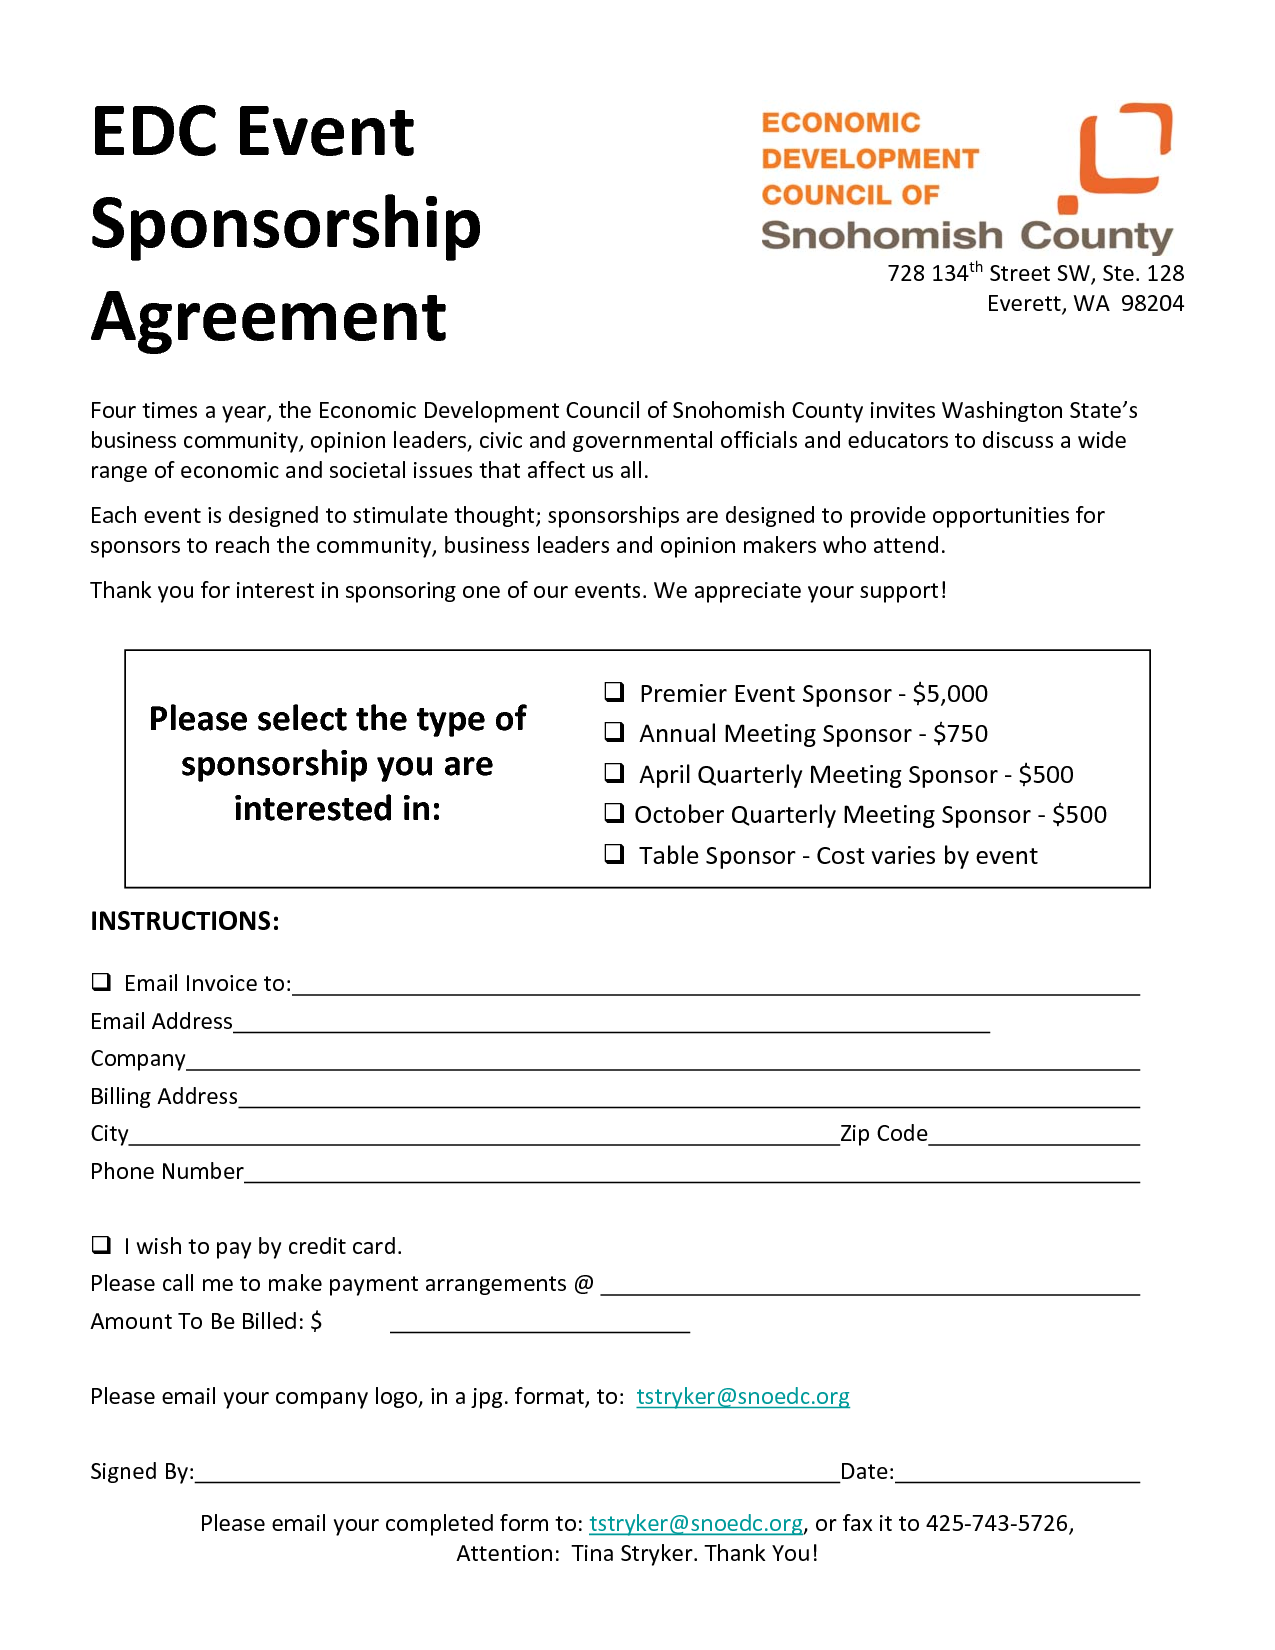 event sponsorship agreement template 28 images the | News to Go 2 ...